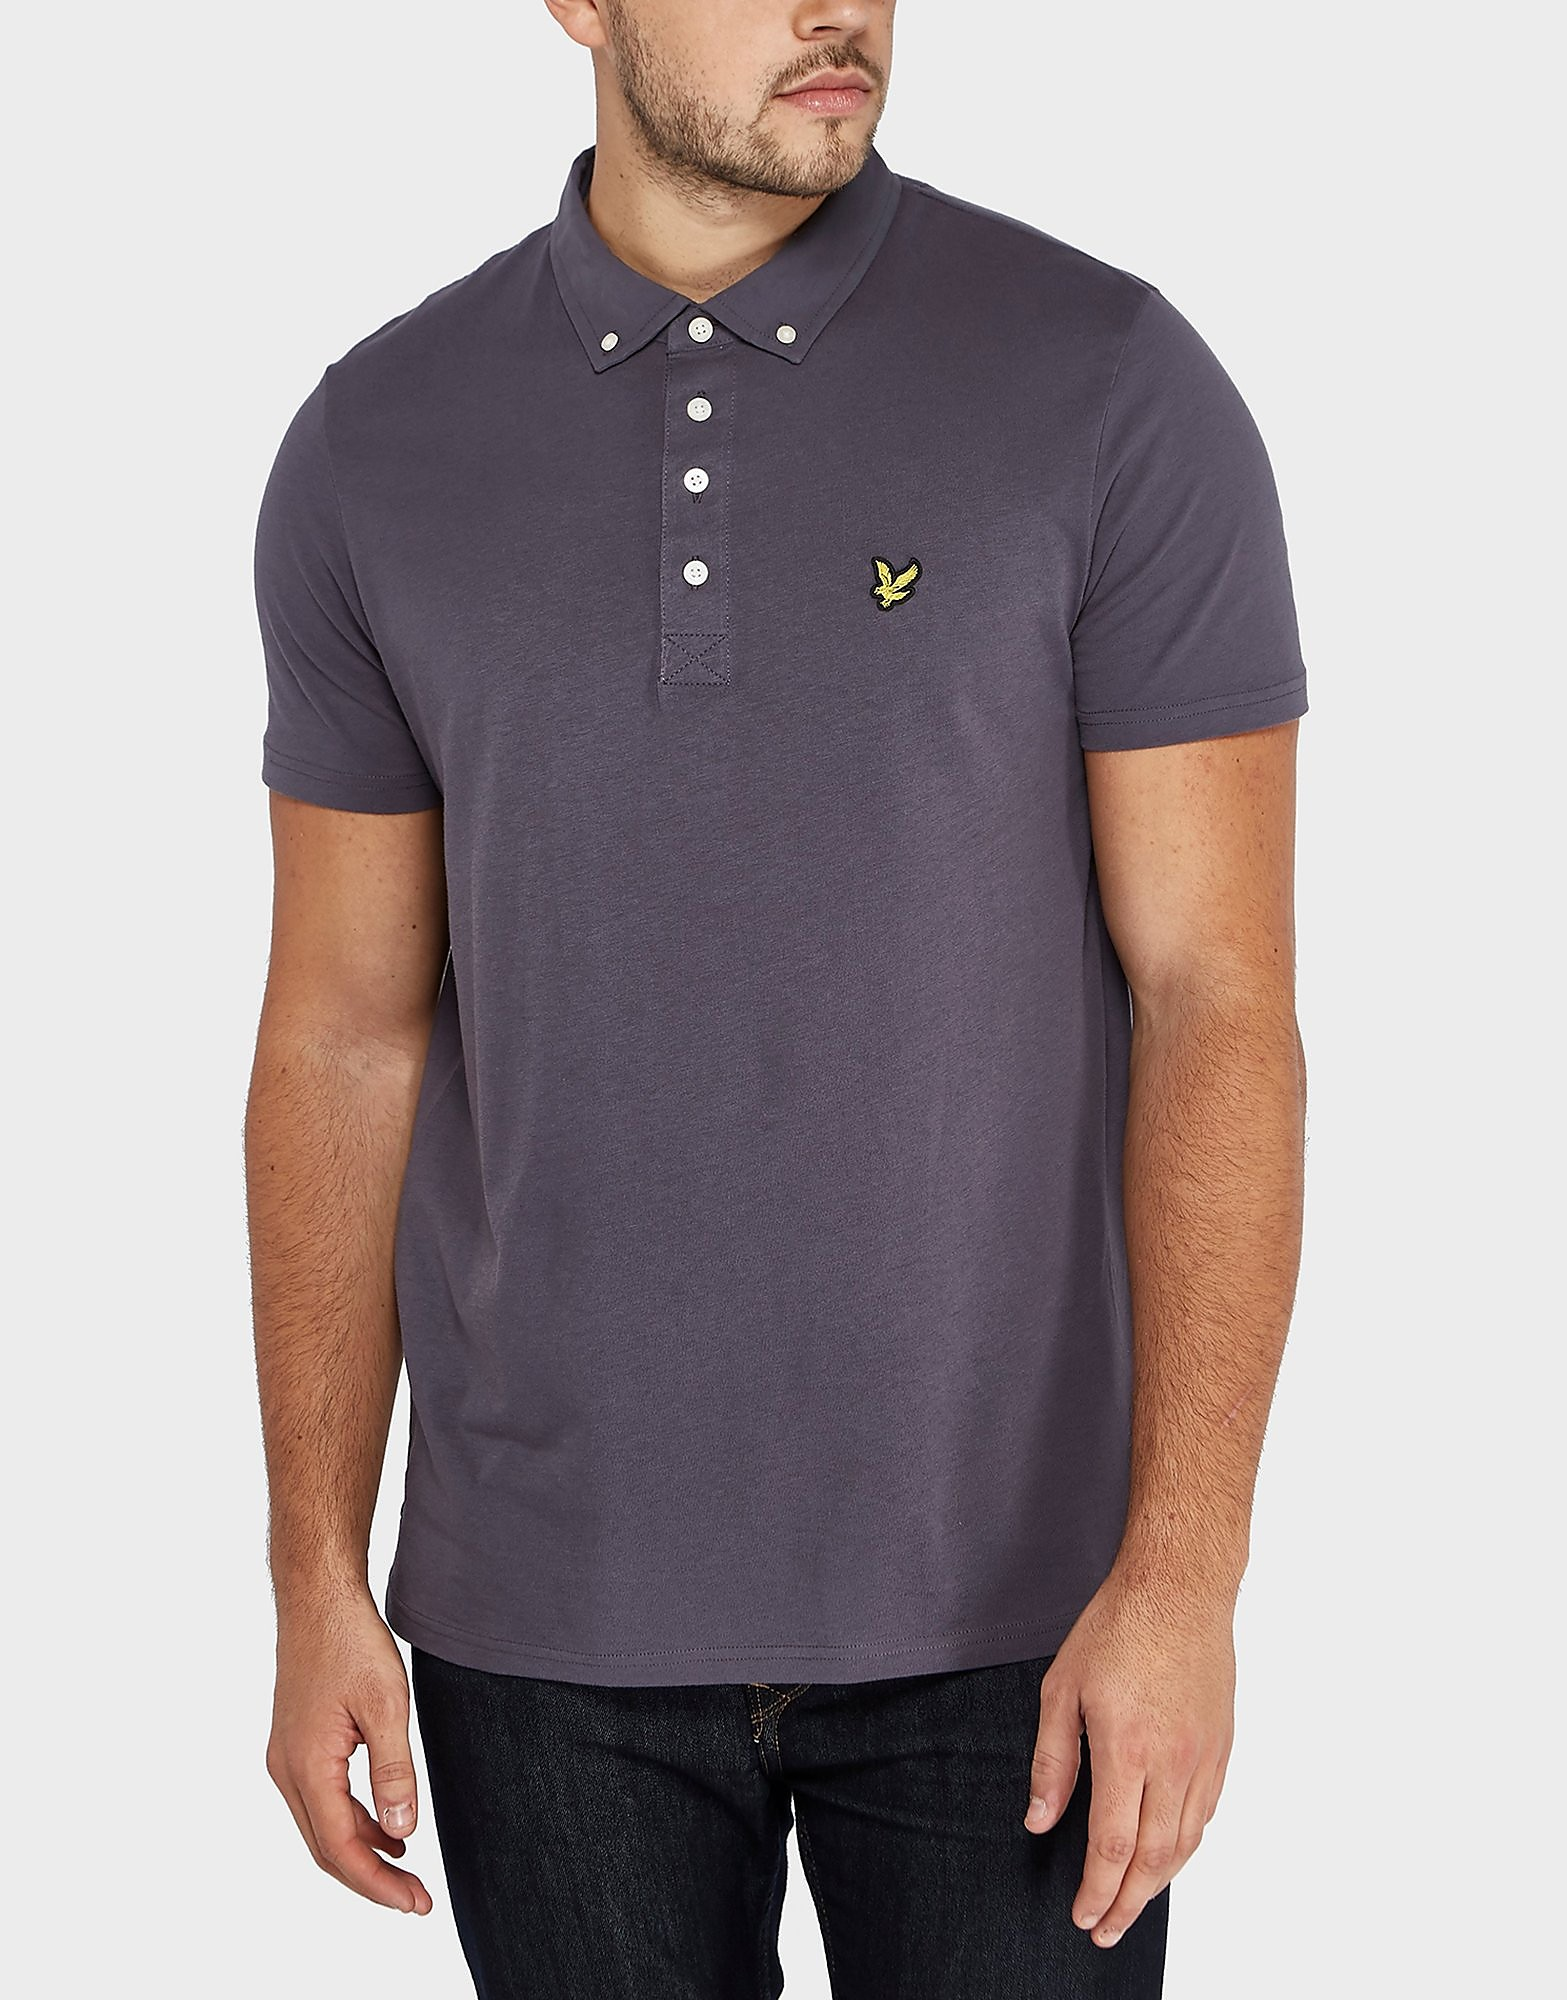 Lyle & Scott Woven Collar Short Sleeve Polo Shirt